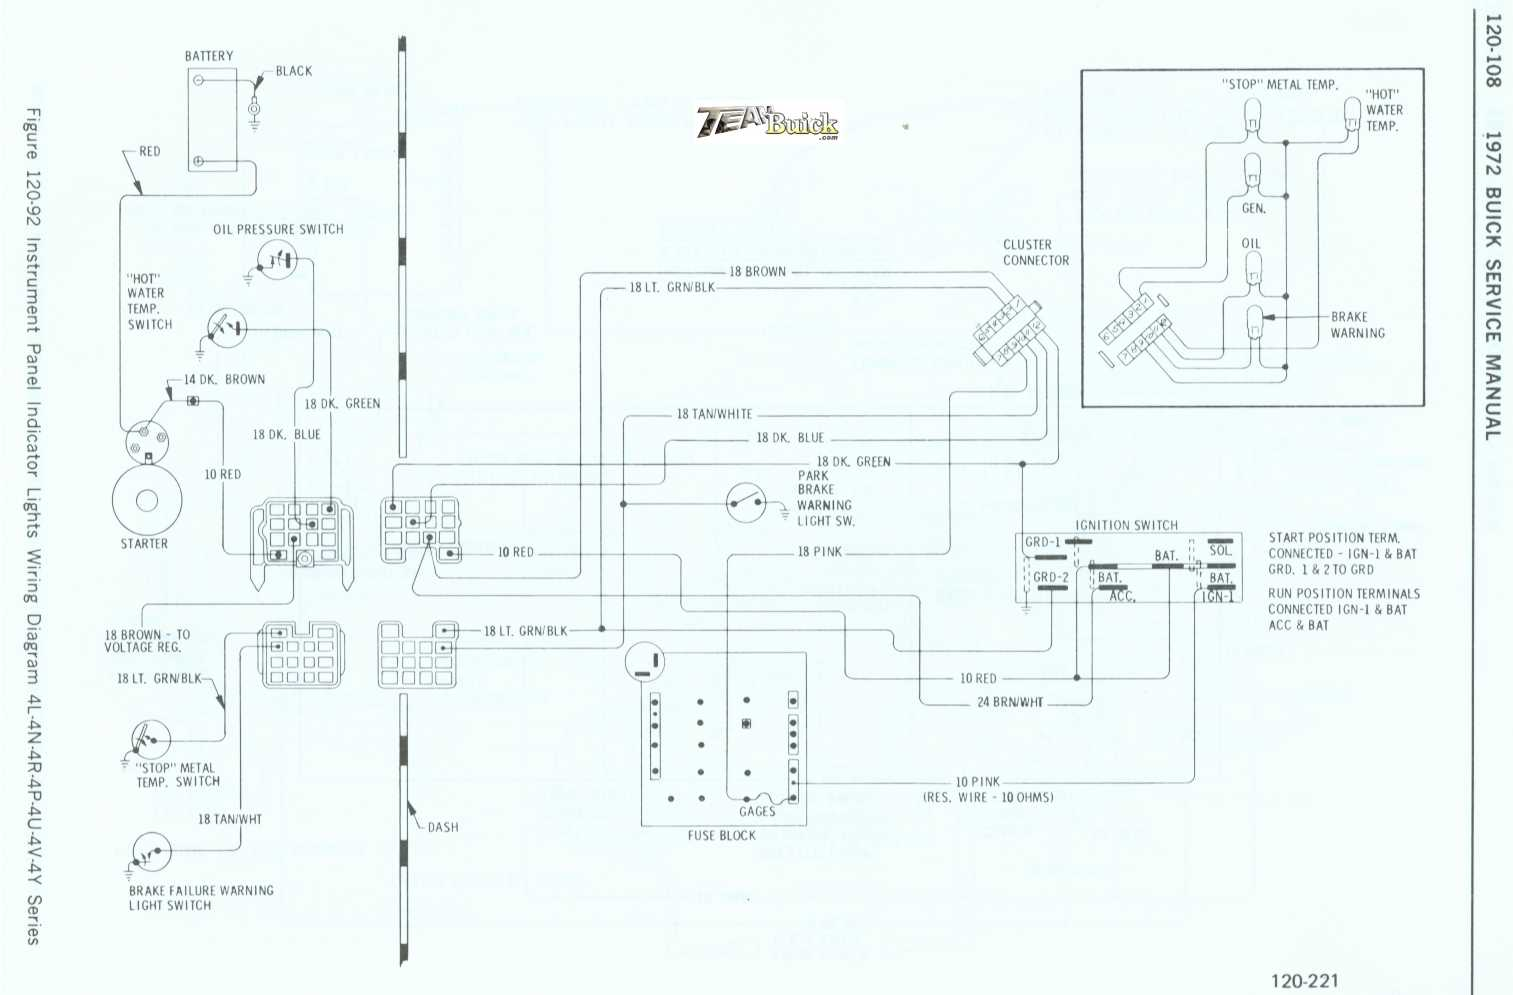 chevelle wiring diagram 1972 2016 ford f150 speaker chilton diagrams 65 free for you buick skylark schematic library rh 30 nepalchitragupta org 1968